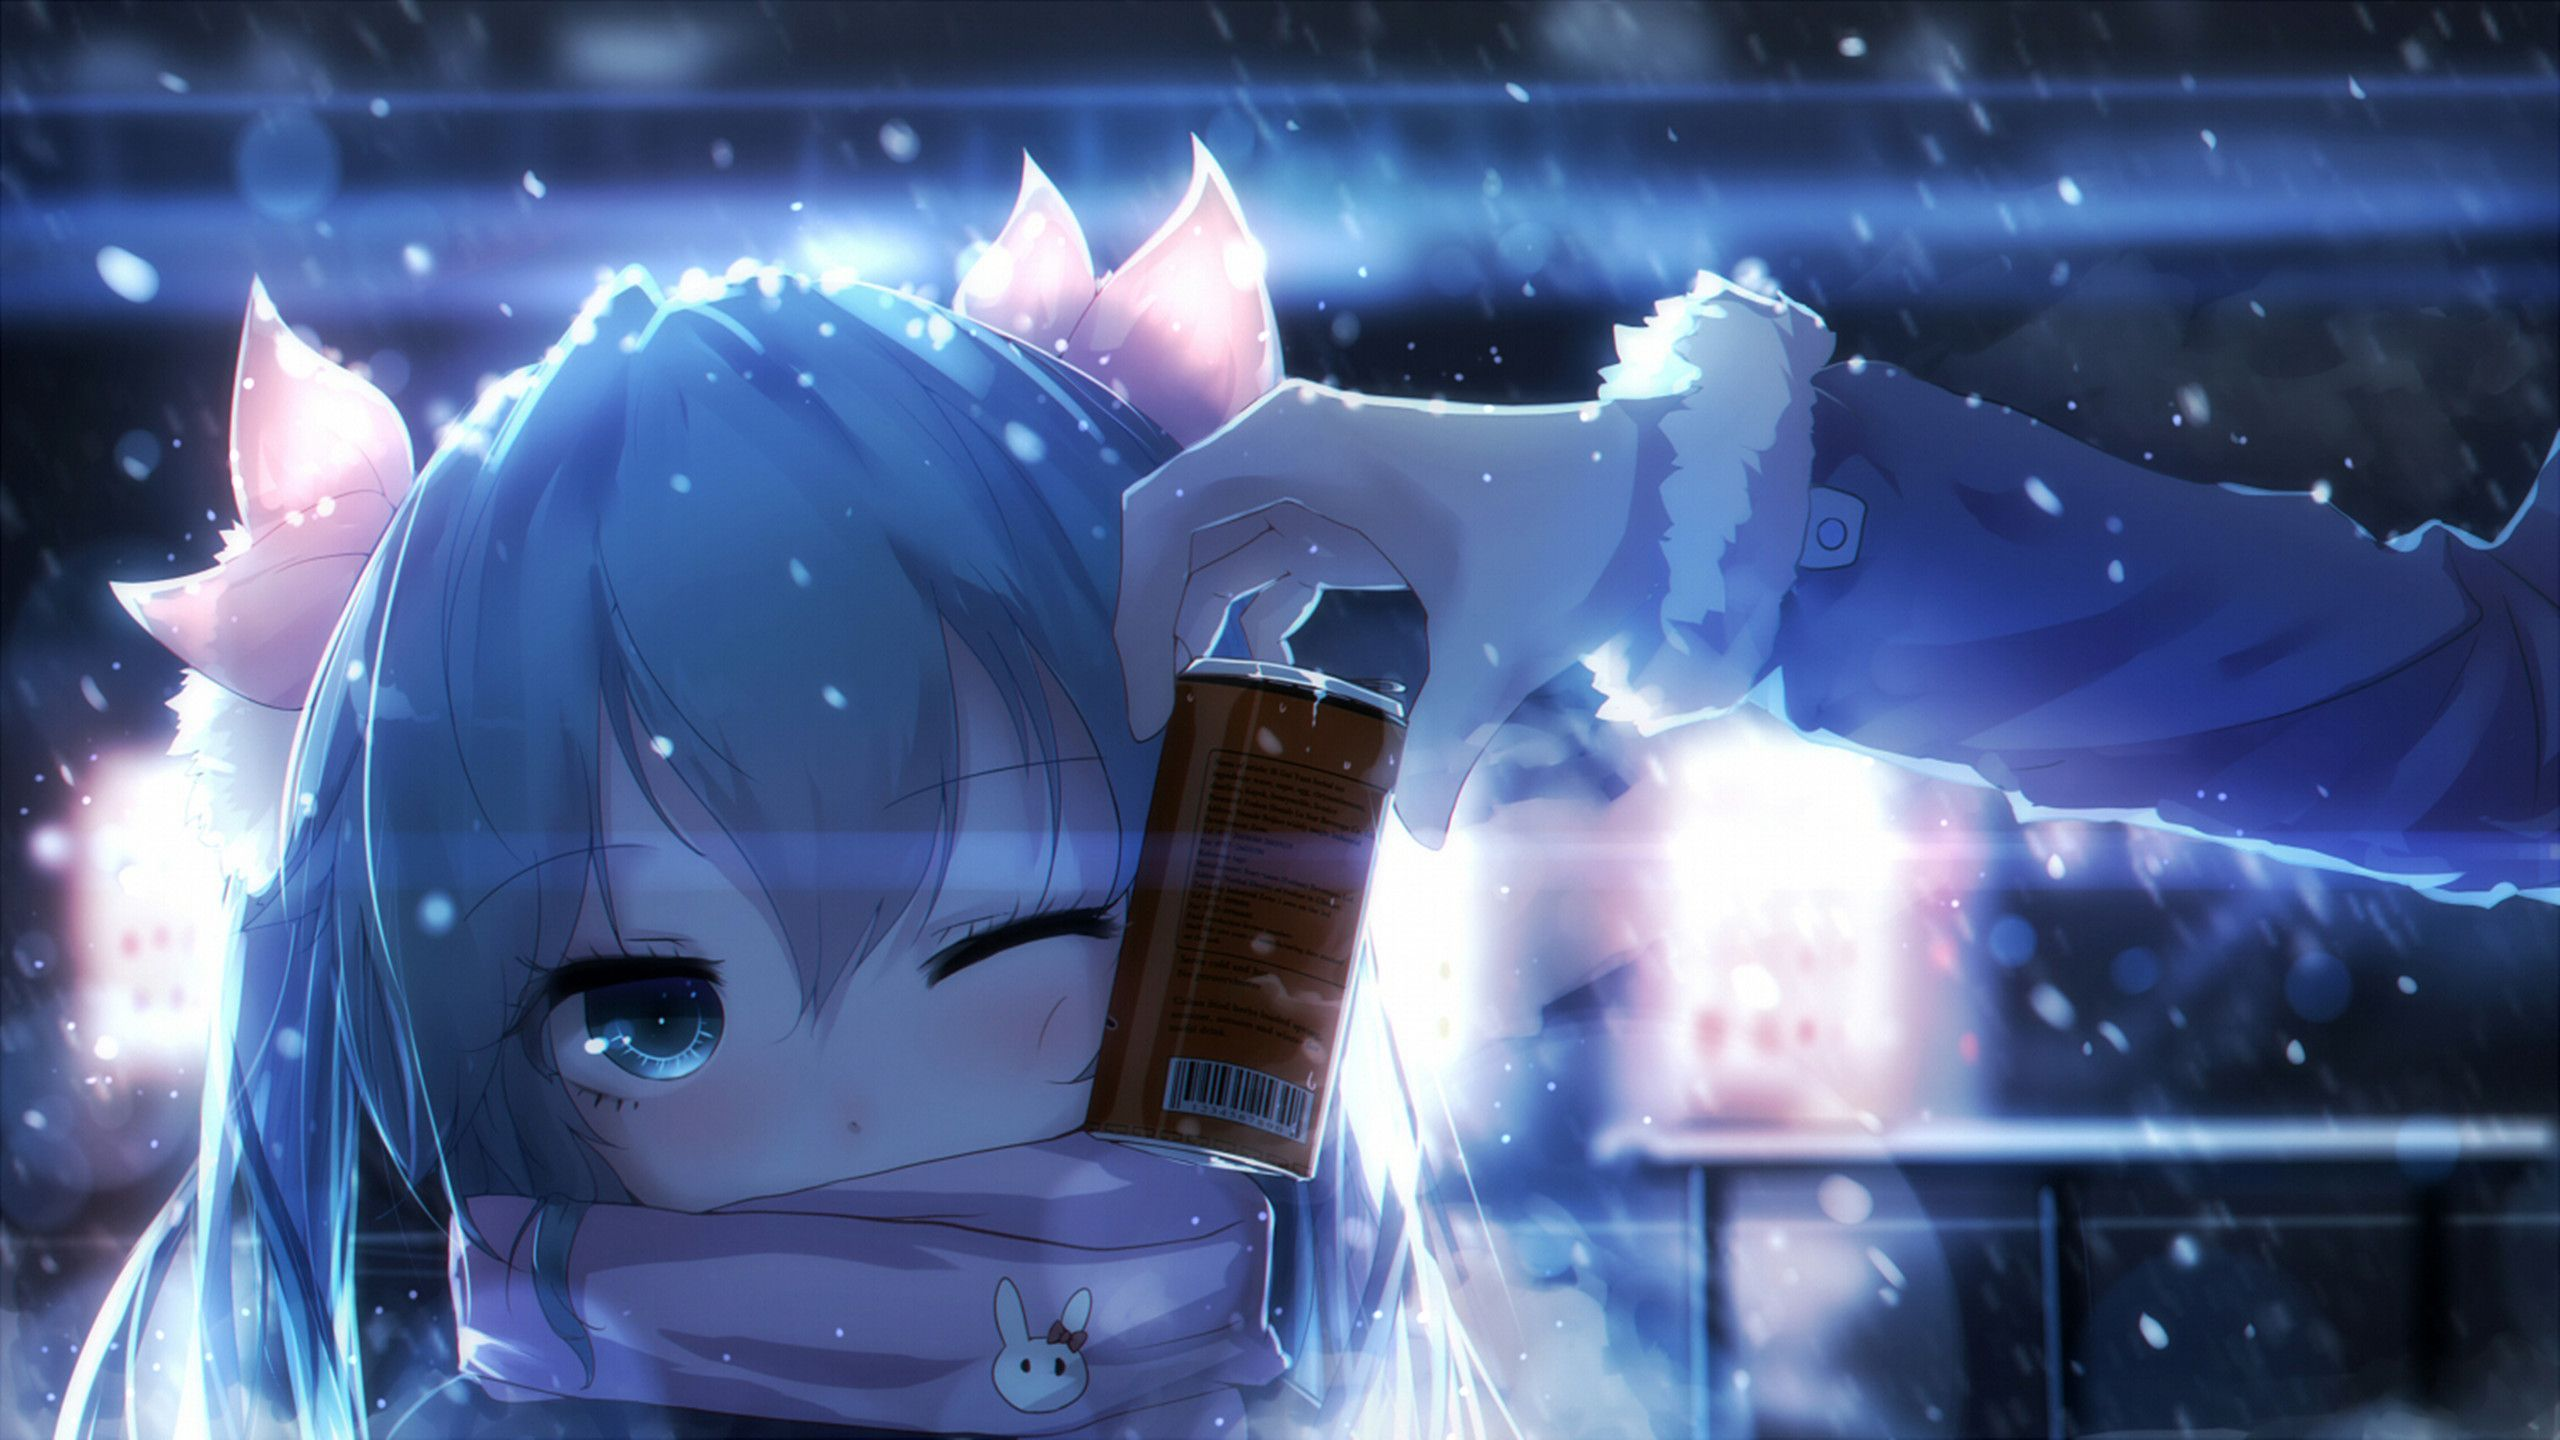 2560x1440 Anime Wallpaper 2560 x 1440 Hatsune Miku, snow, cold, blue, scarf ...